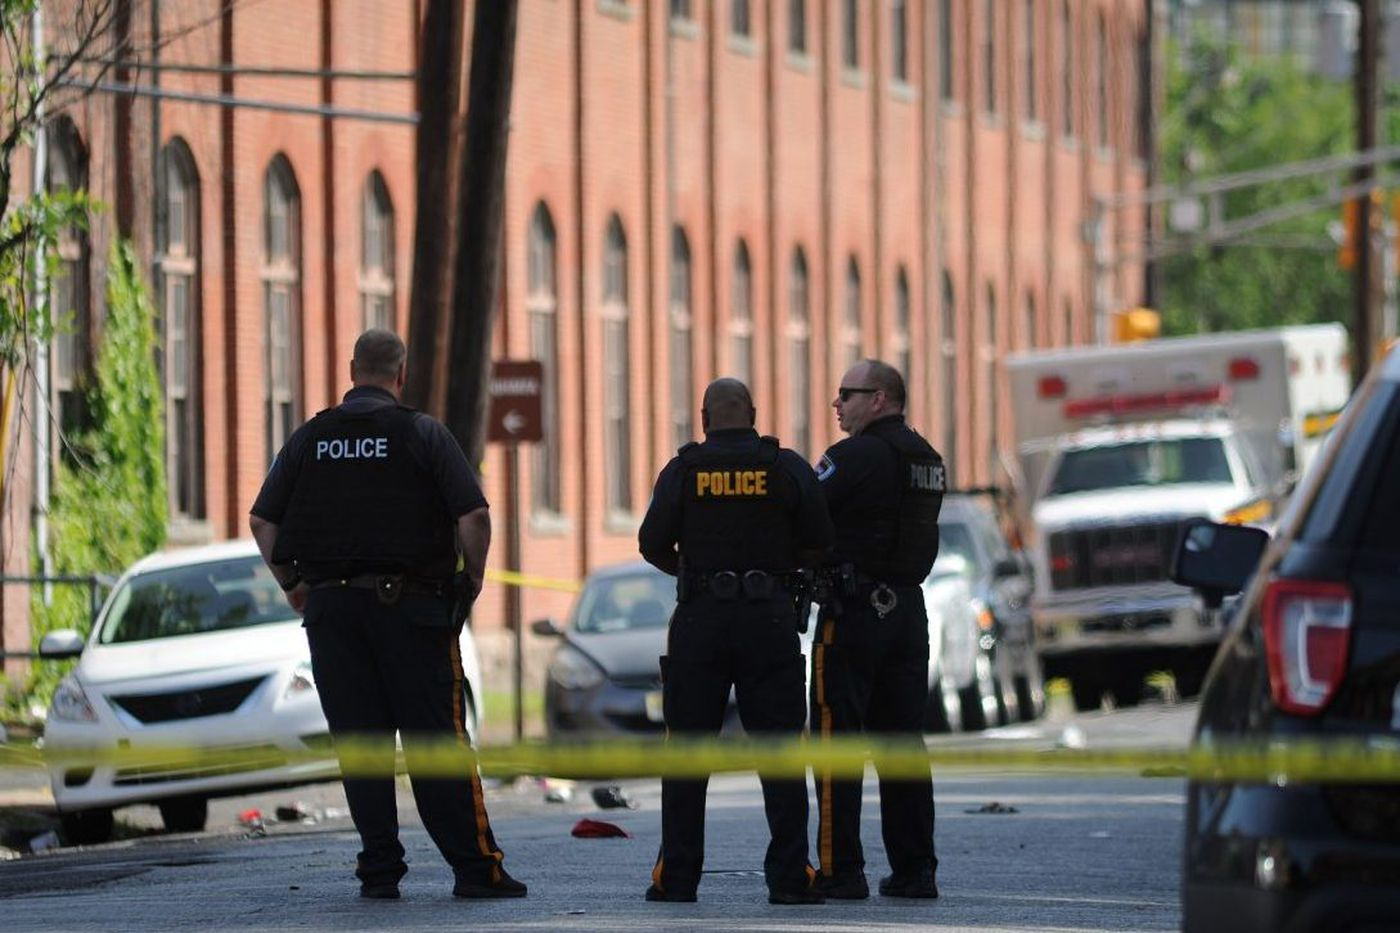 Gunmen ID'd in Trenton arts festival shooting that left 1 dead, 22 injured